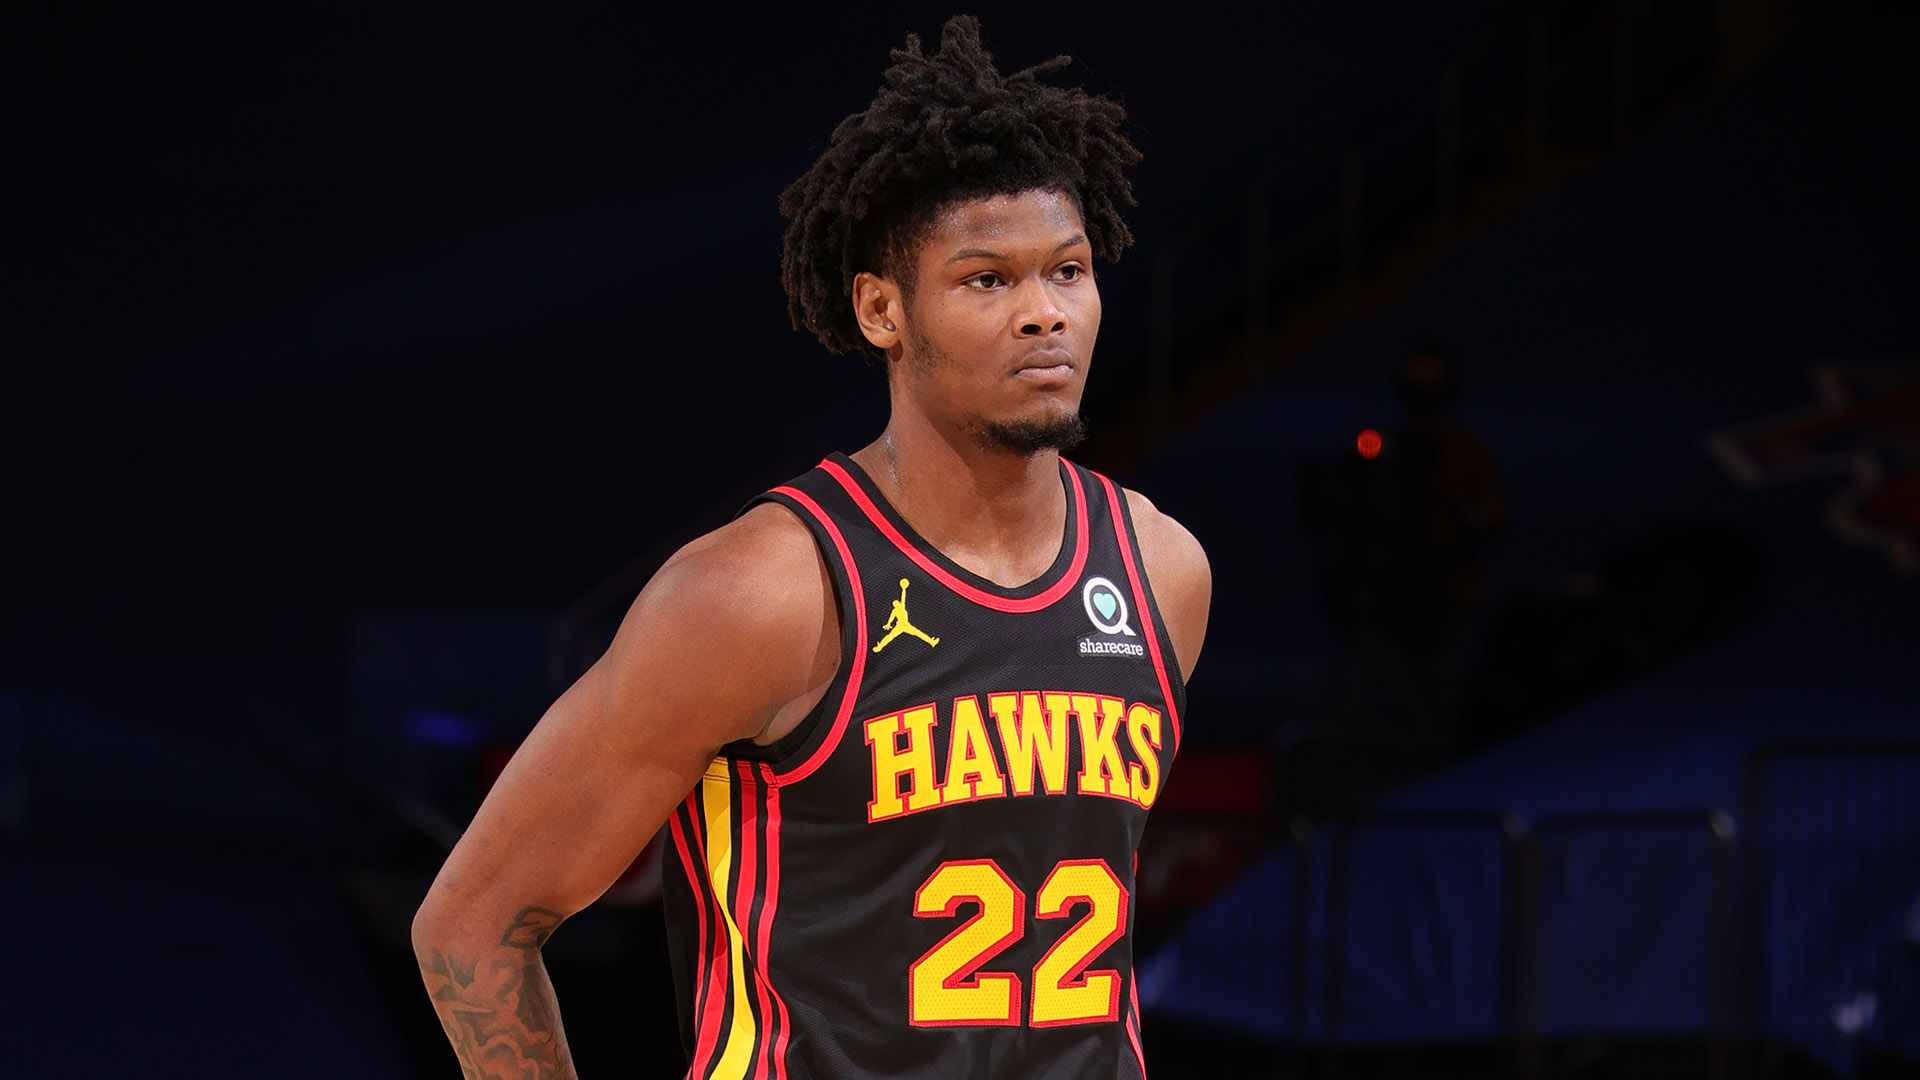 Hawks' Cam Reddish expected to miss first round of playoffs